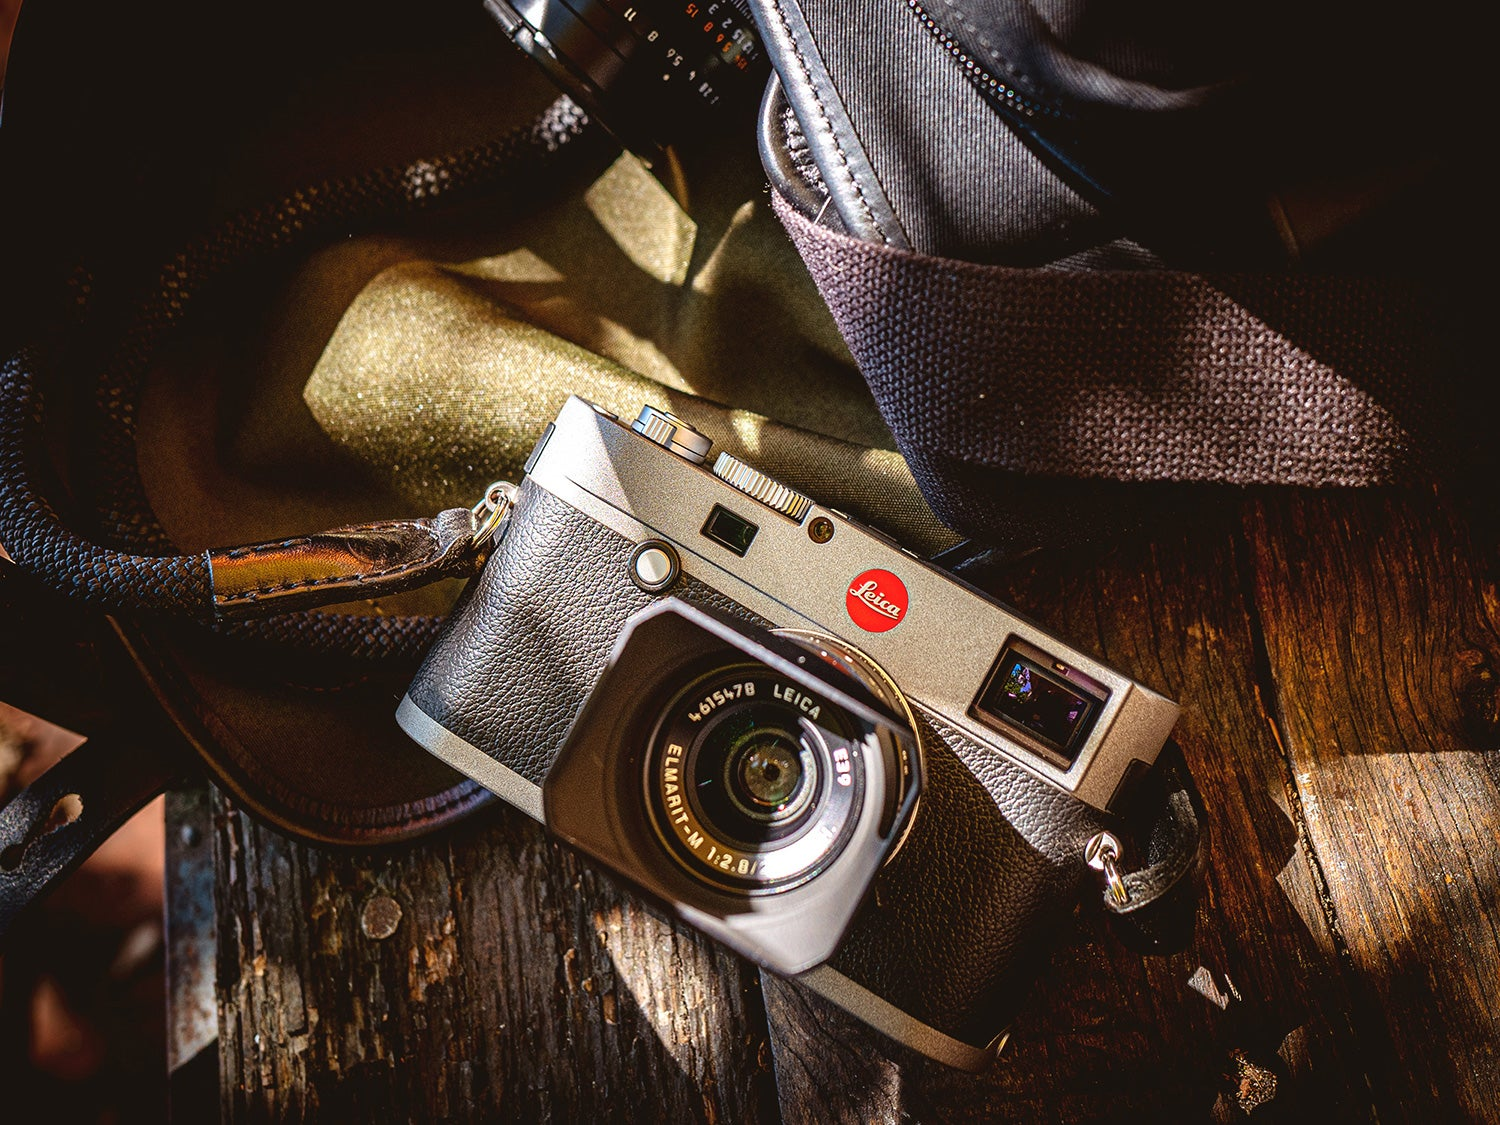 Leica's M-E (Typ 240) is a more budget-friendly rangefinder